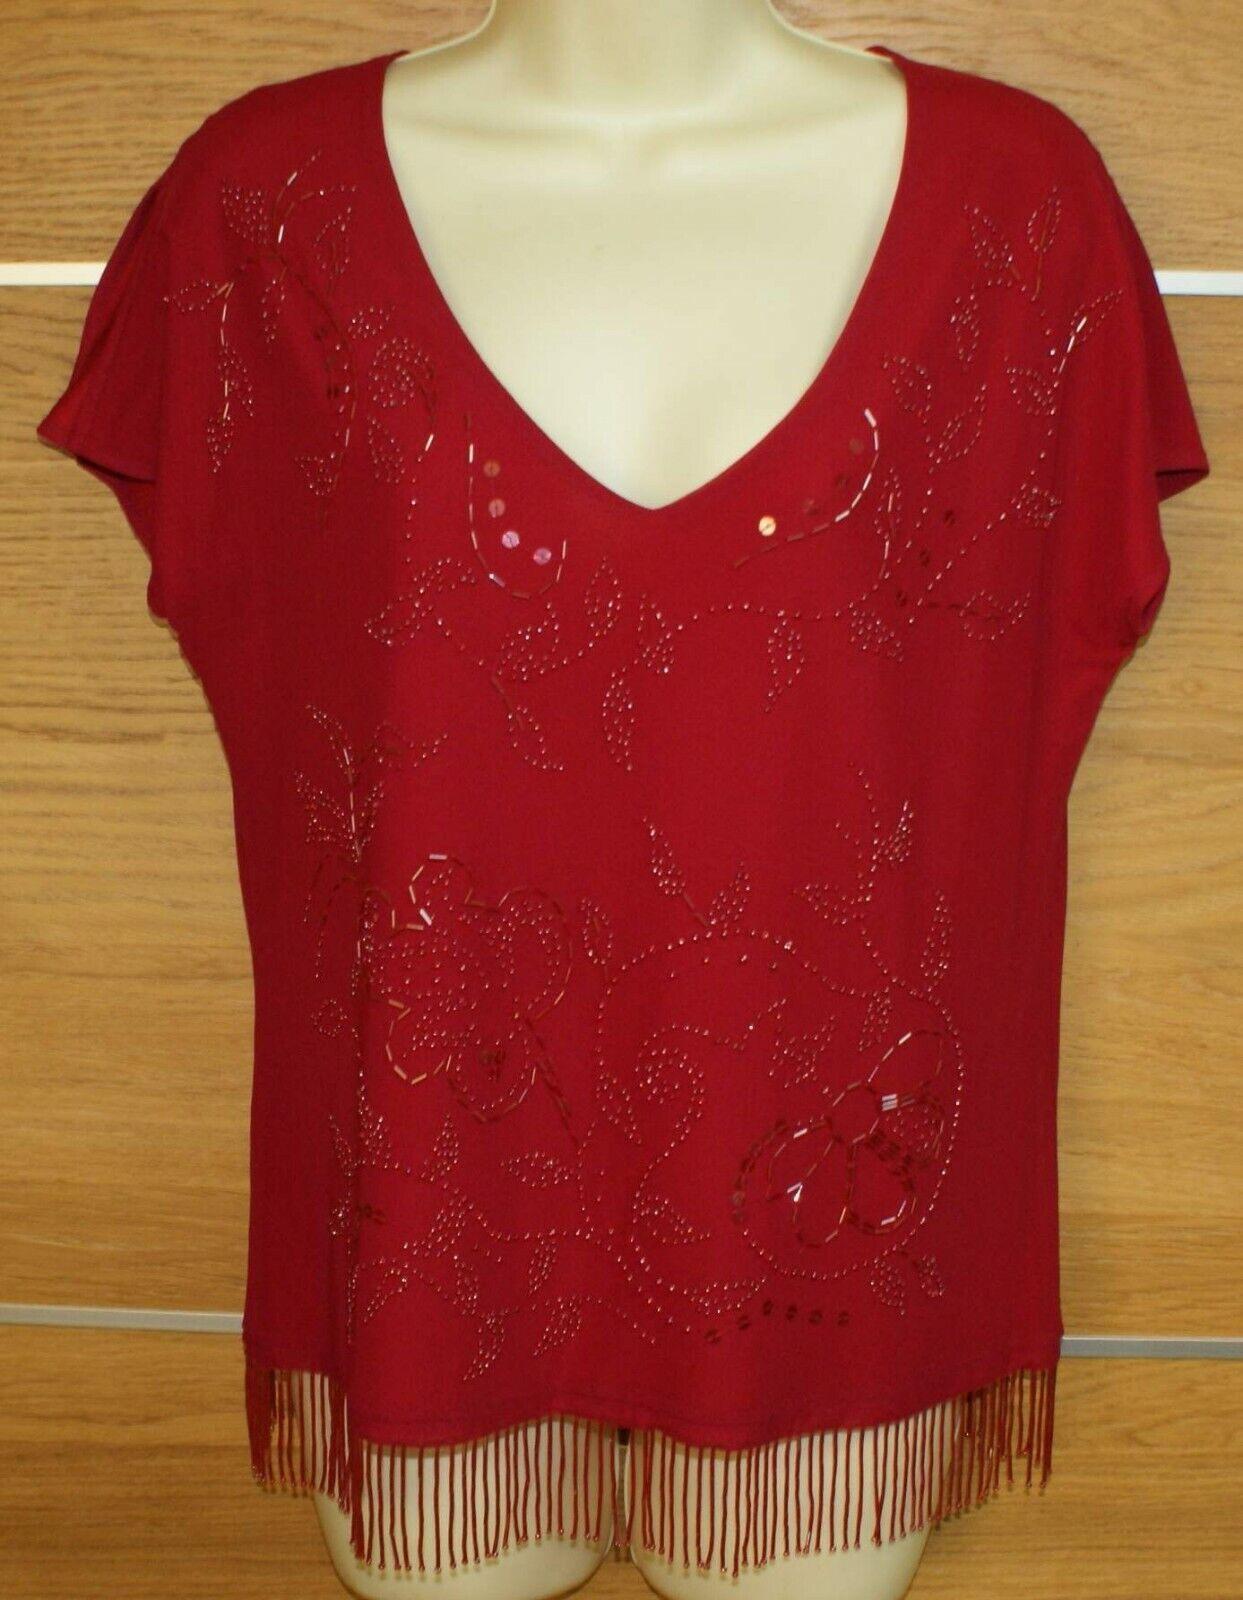 LAURA ASHLEY red top size L